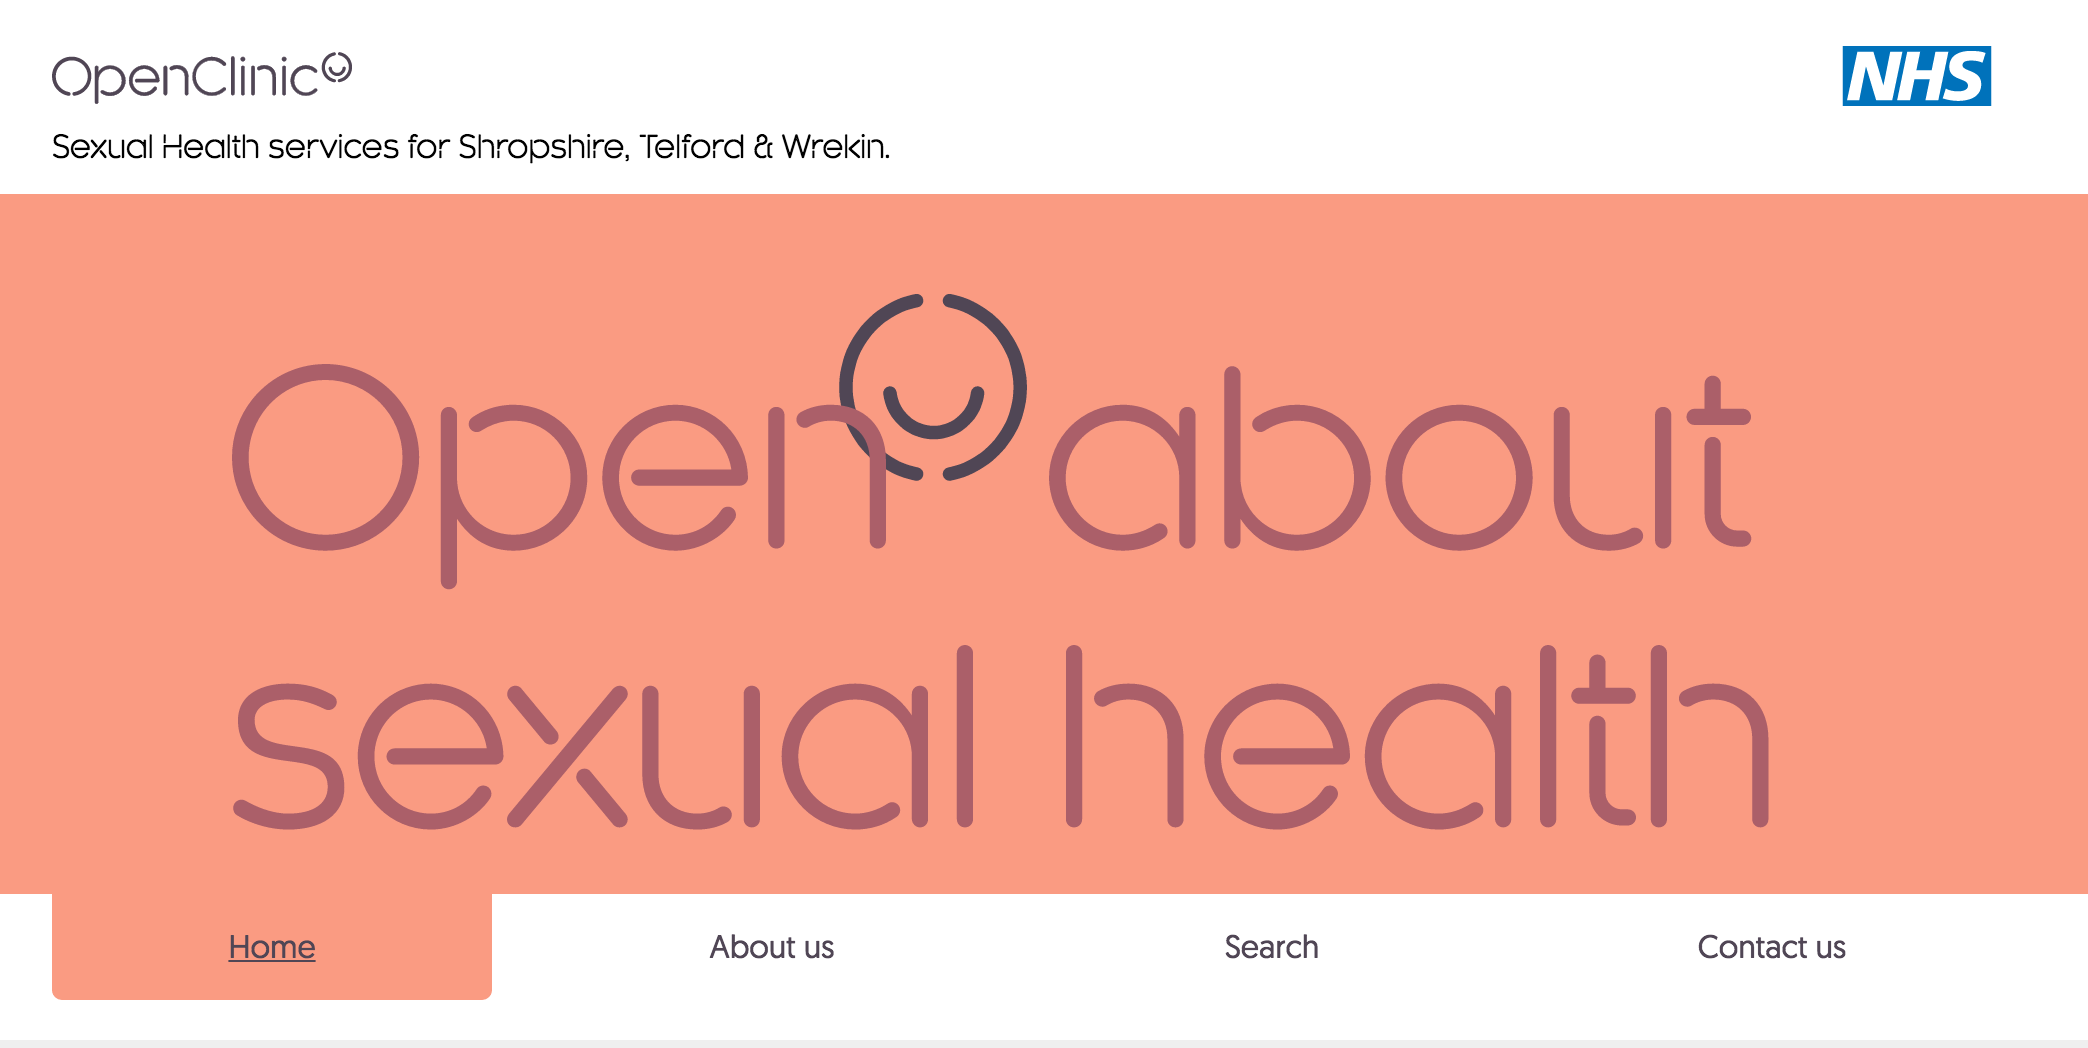 OpenClinic | Shropshire and Telford & Wrekin sexual health services